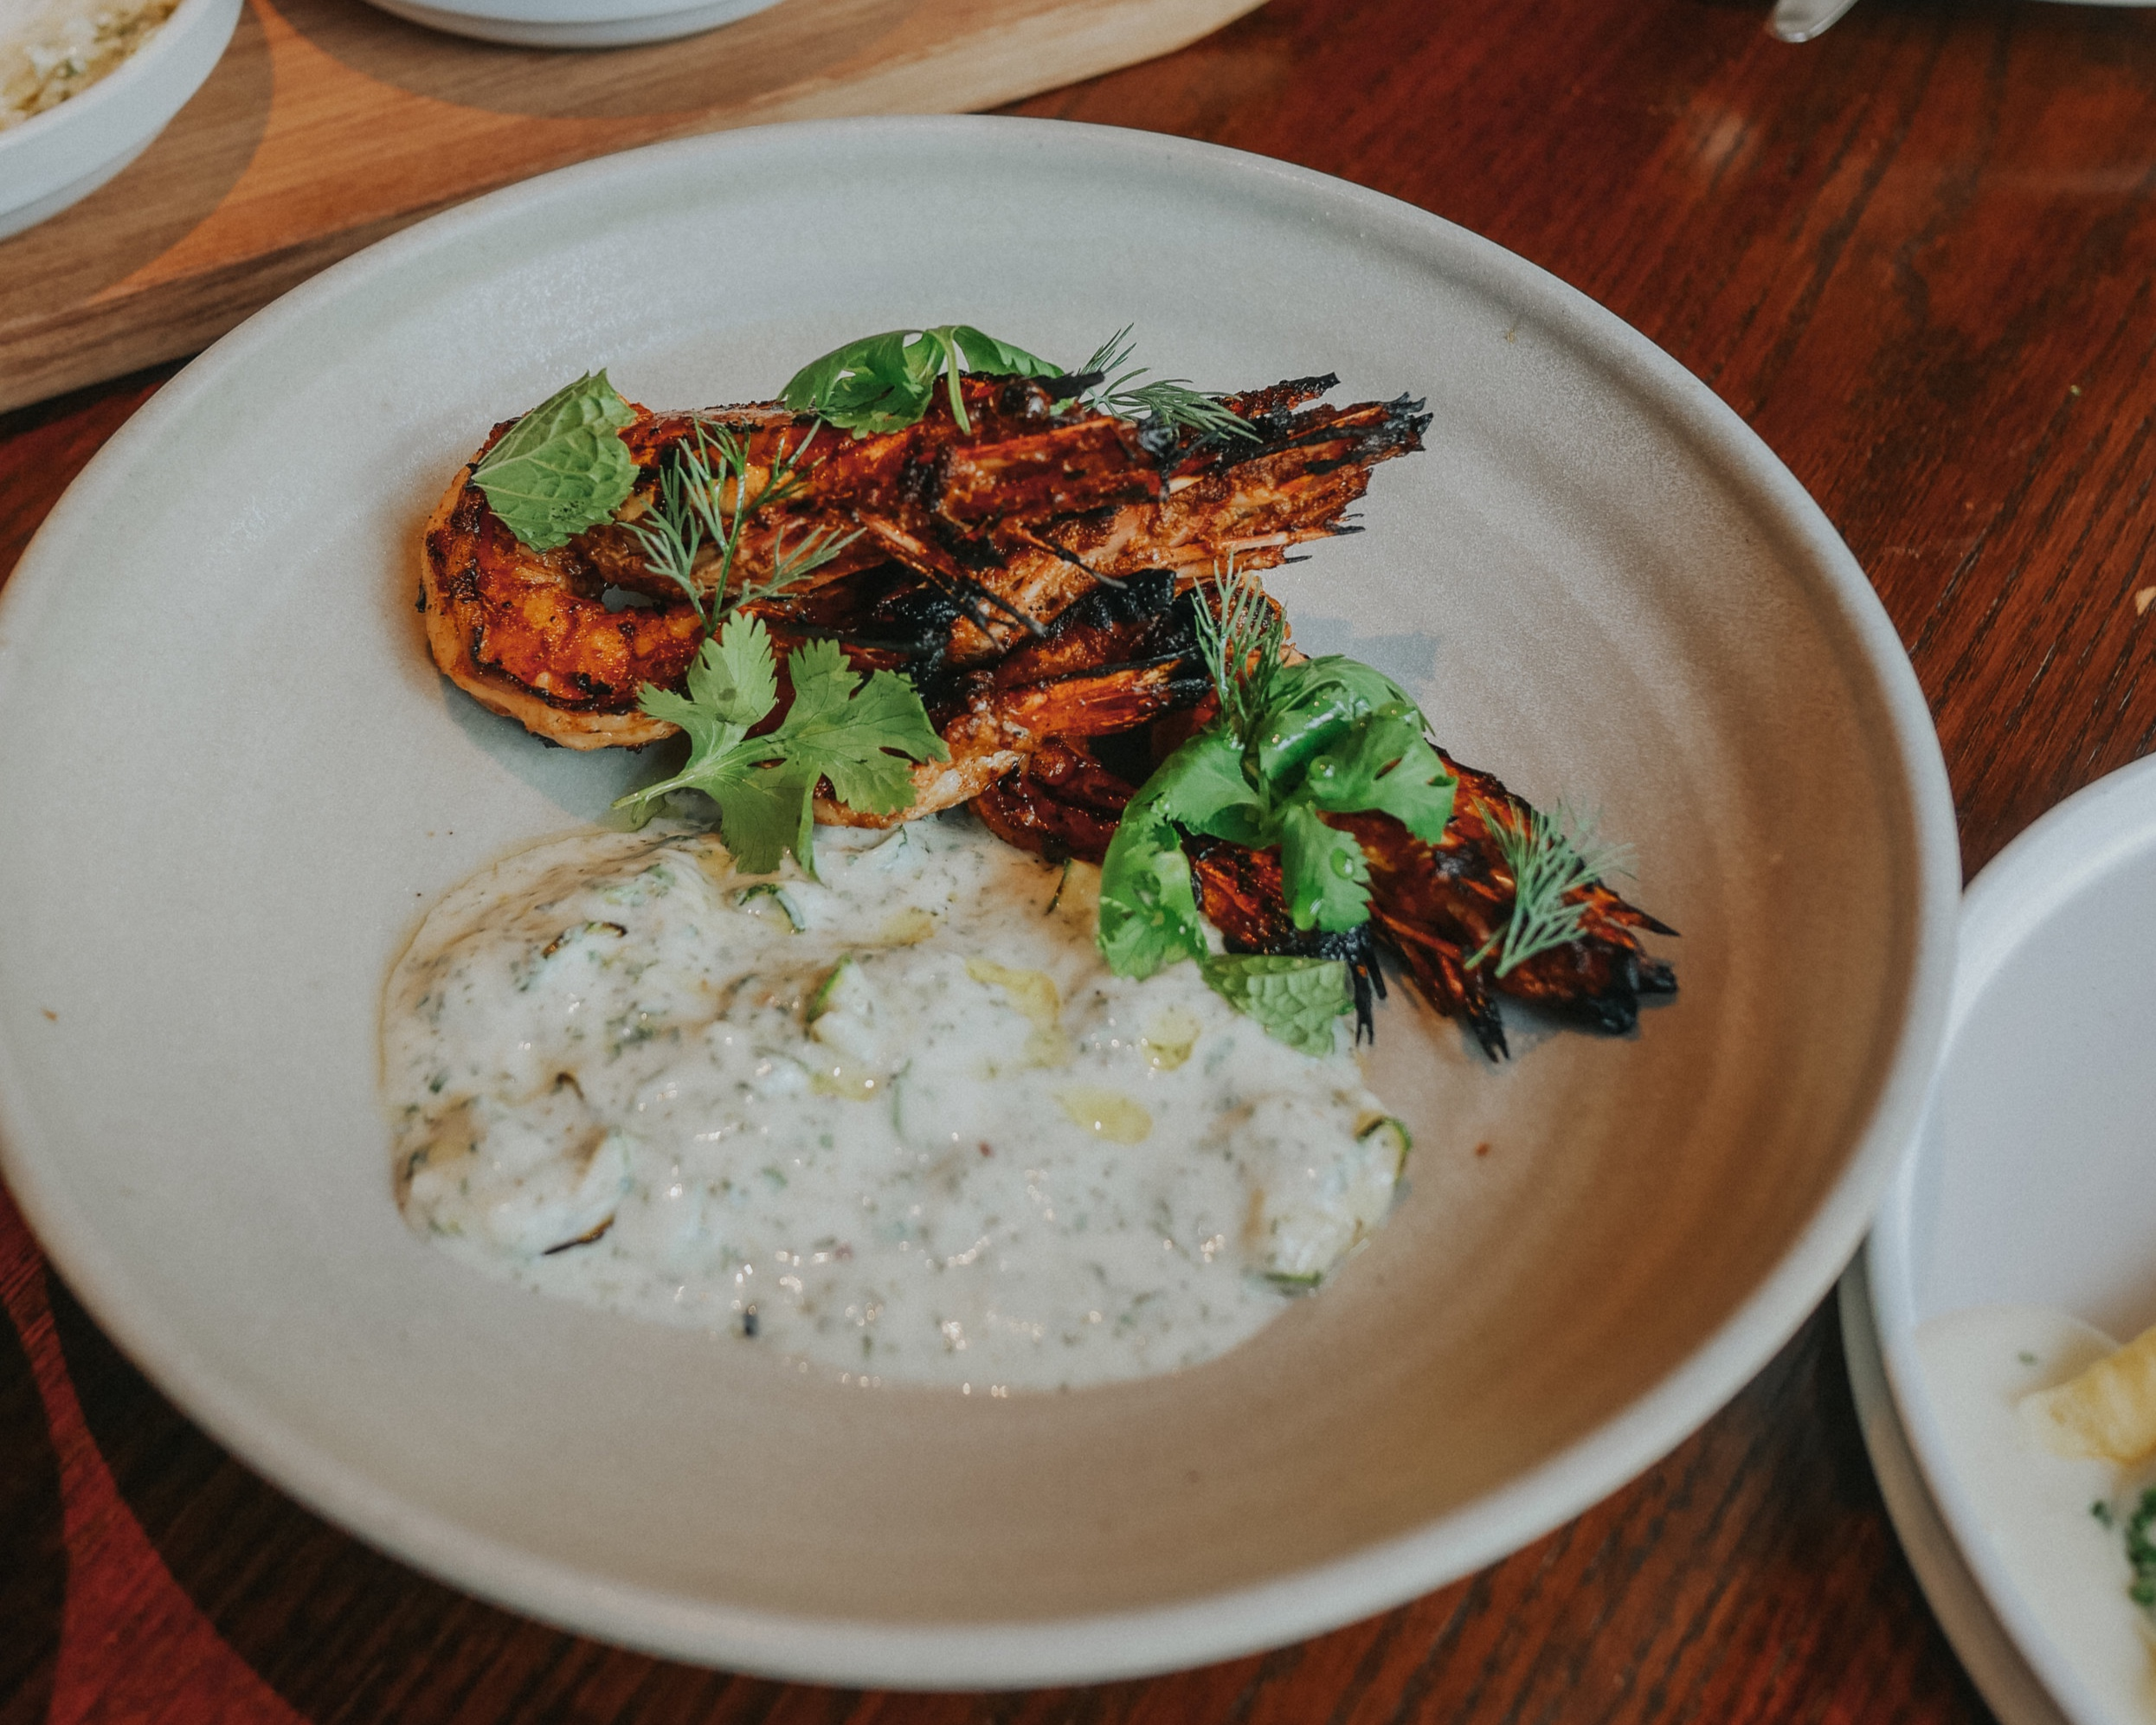 Grilled harissa marinated prawns with zucchini smoked yogurt